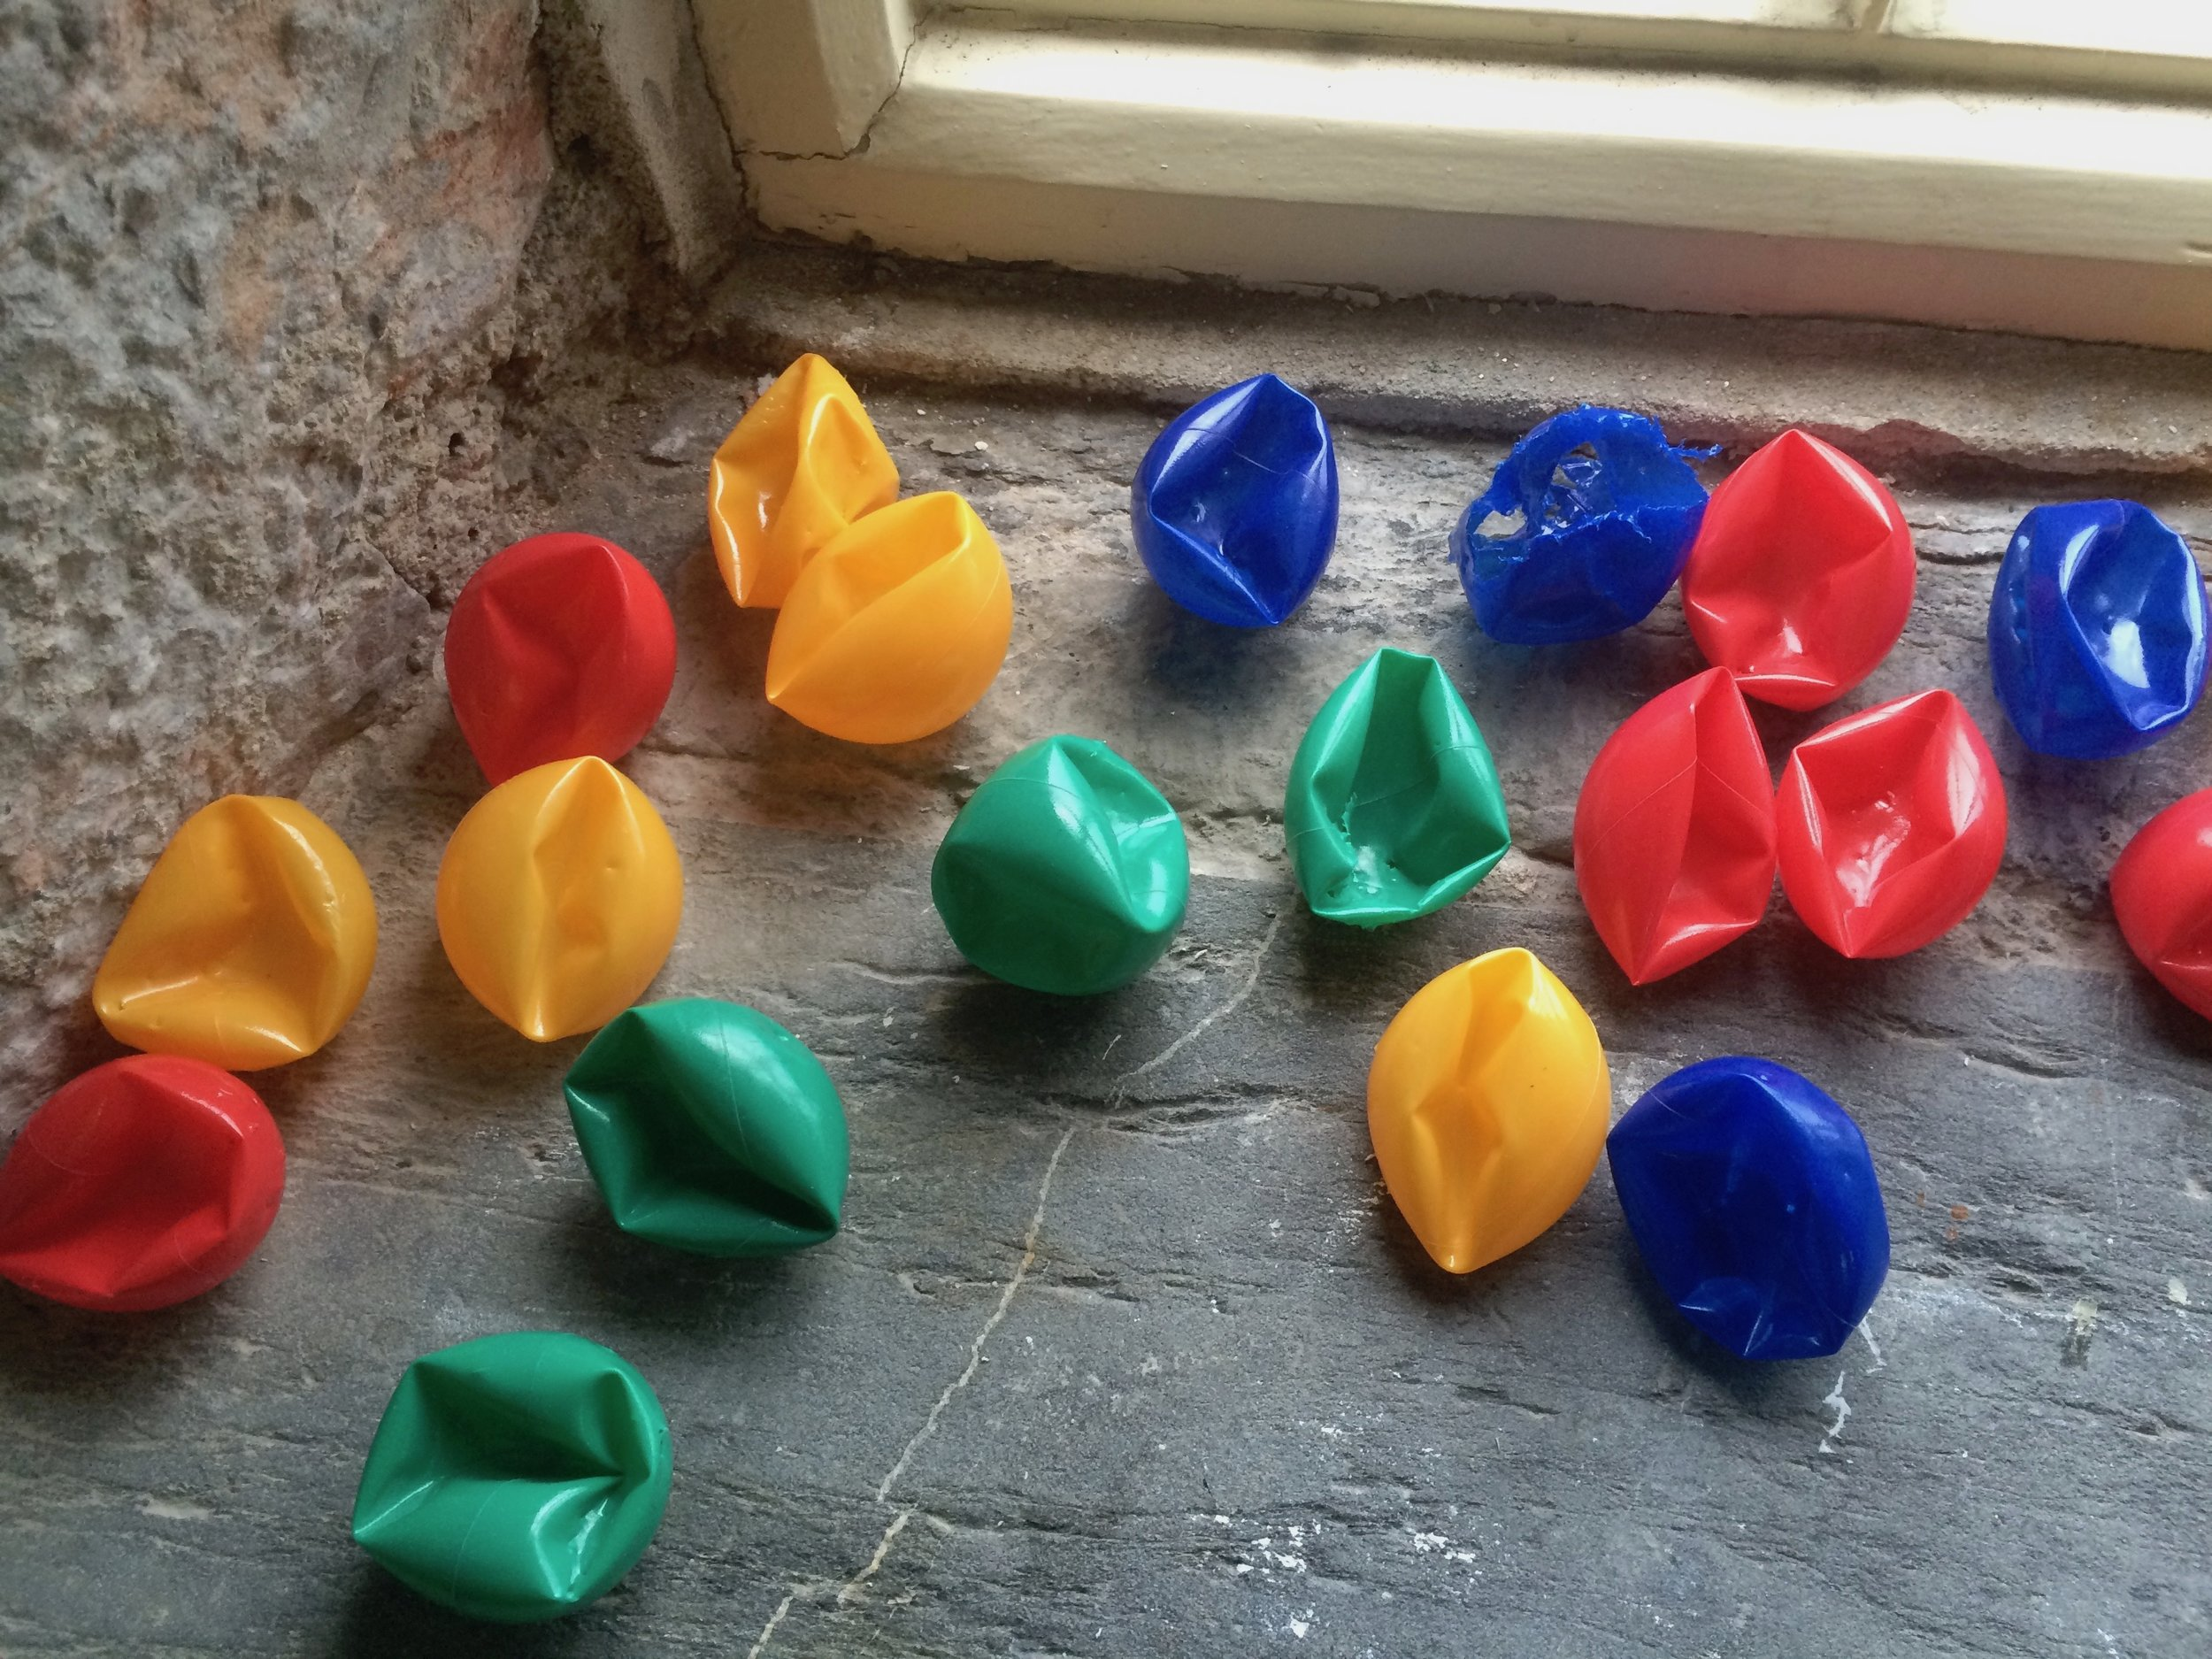 Asda Plastic Balls, Manipulated by Canine Jaw (size variable)